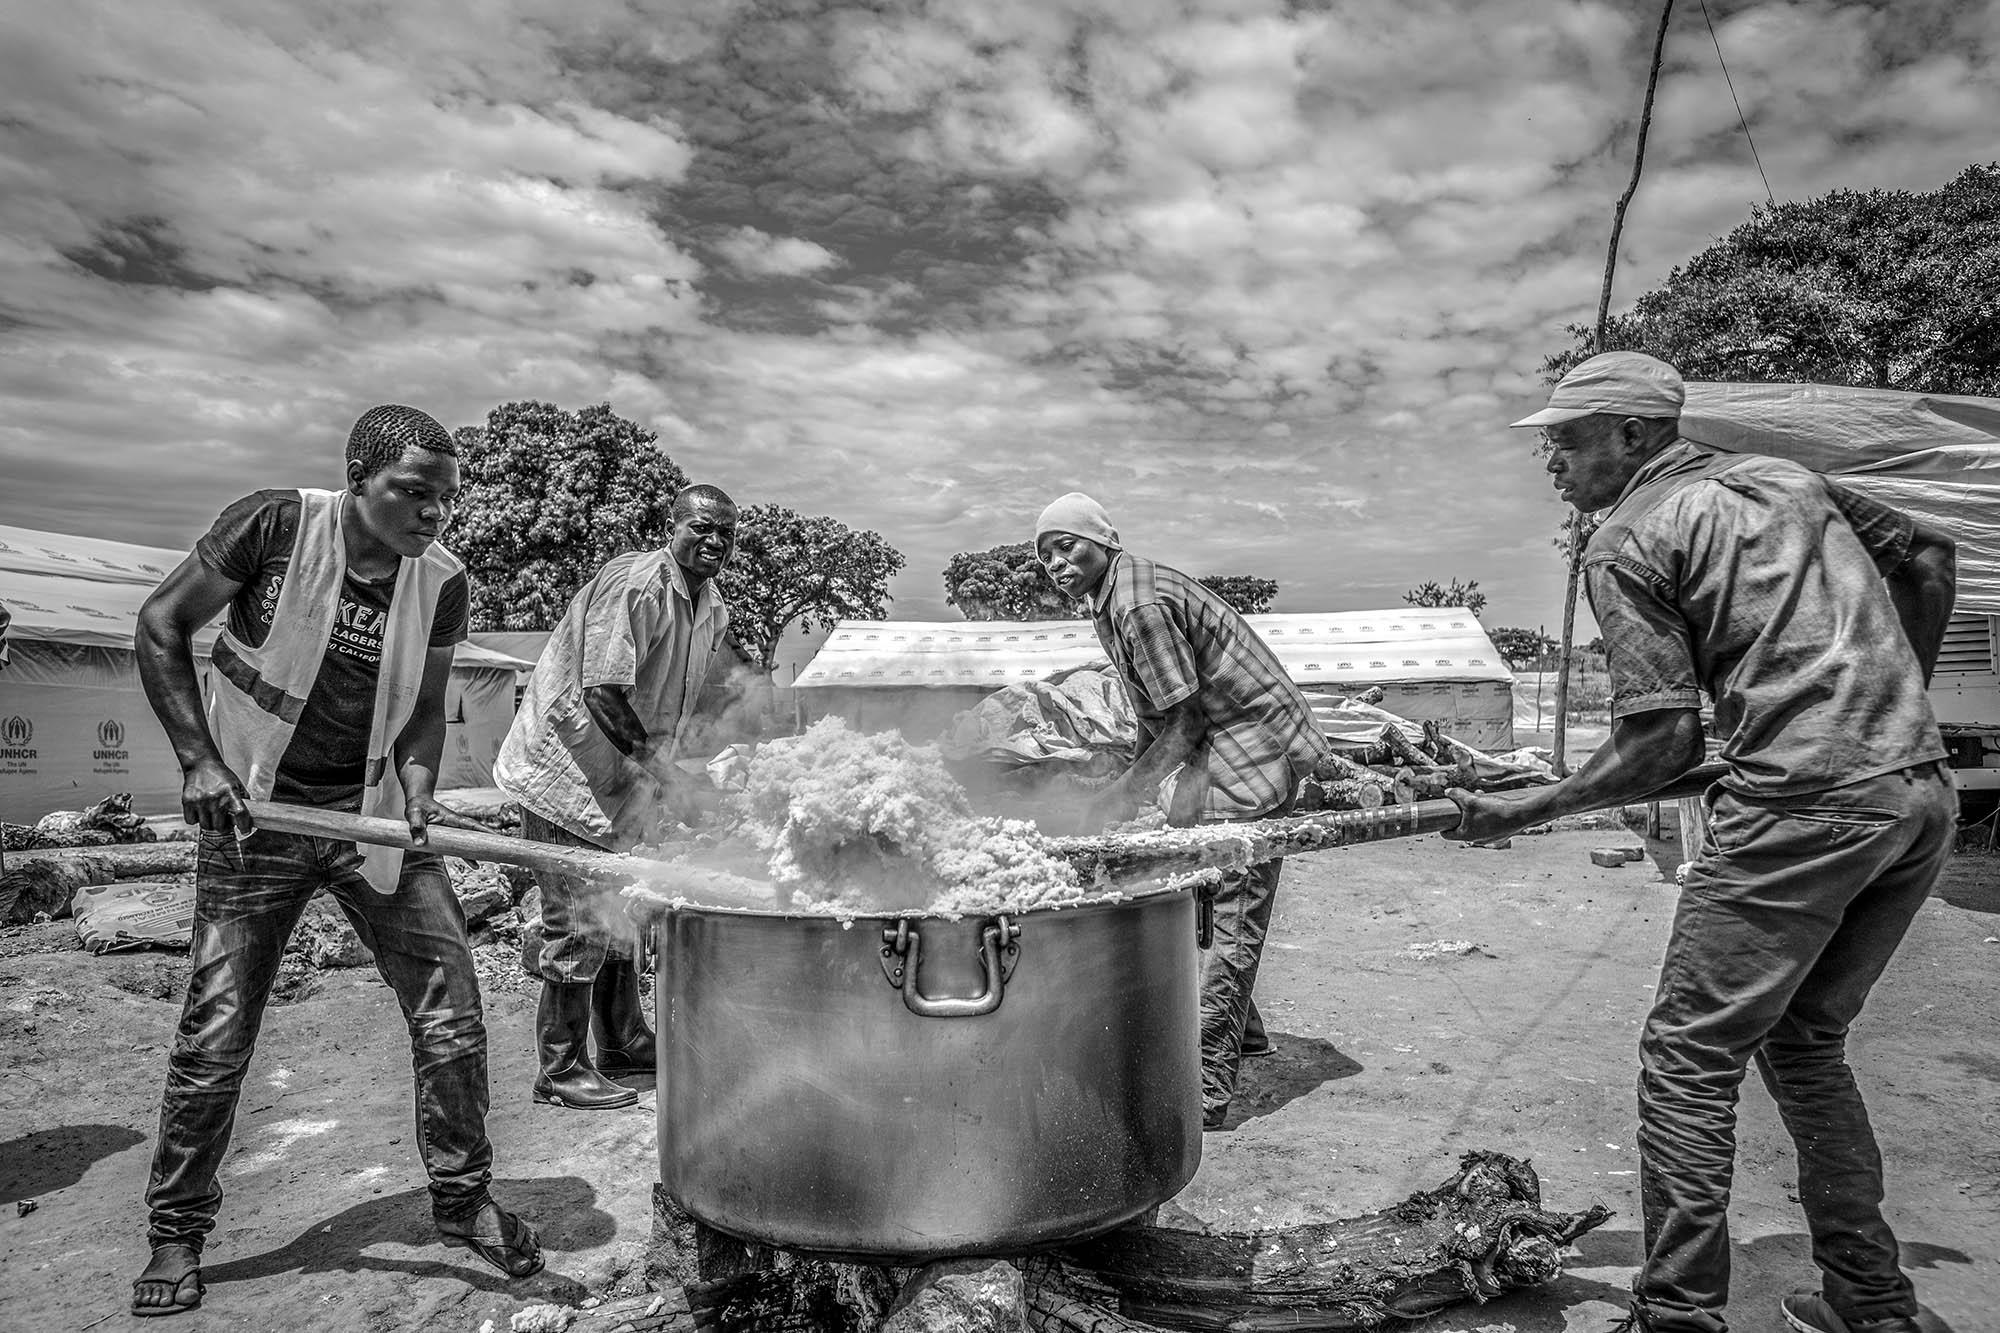 A hot corn meal is being prepared for new arrivals at Kuluba collection point in Koboko district in Northern Uganda near South Sudan on May 1, 2017